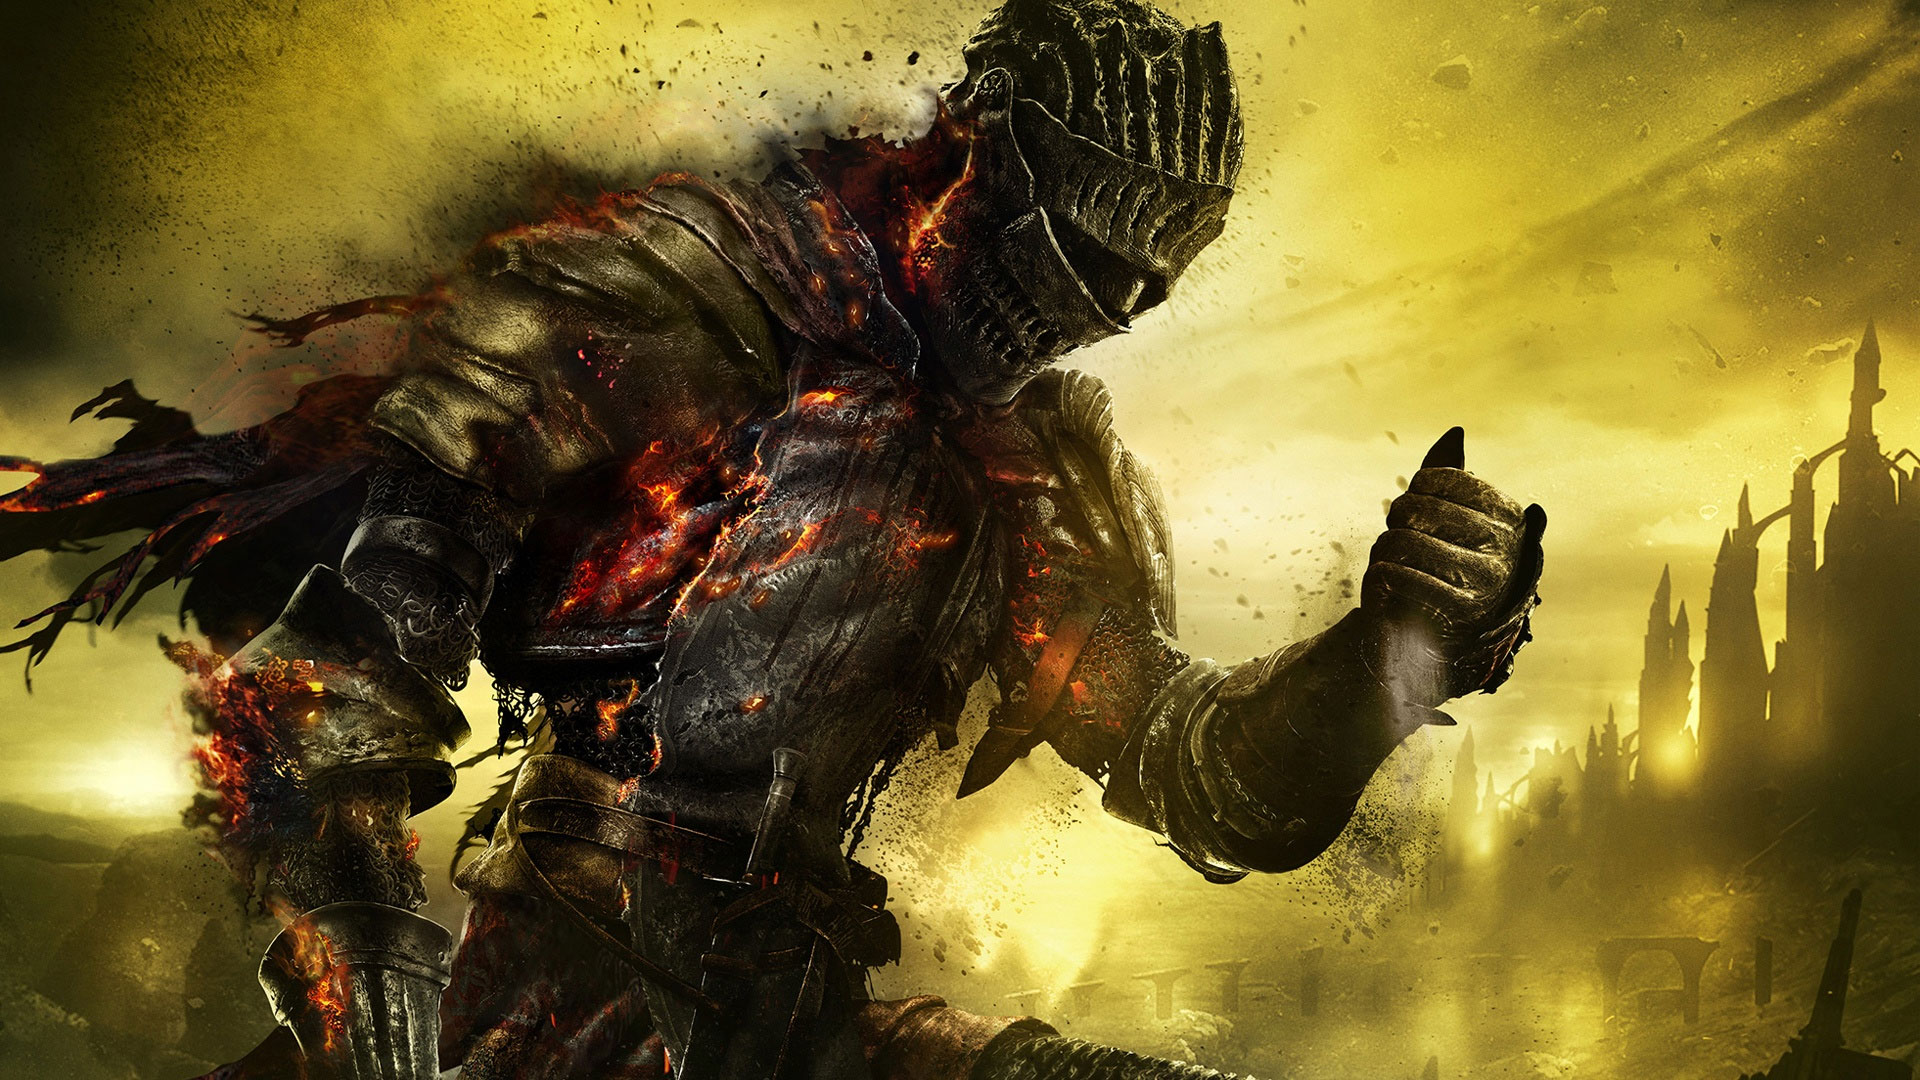 humble-monthly-incorpora-coleccion-juego-dark-souls-iii-frikigamers.com